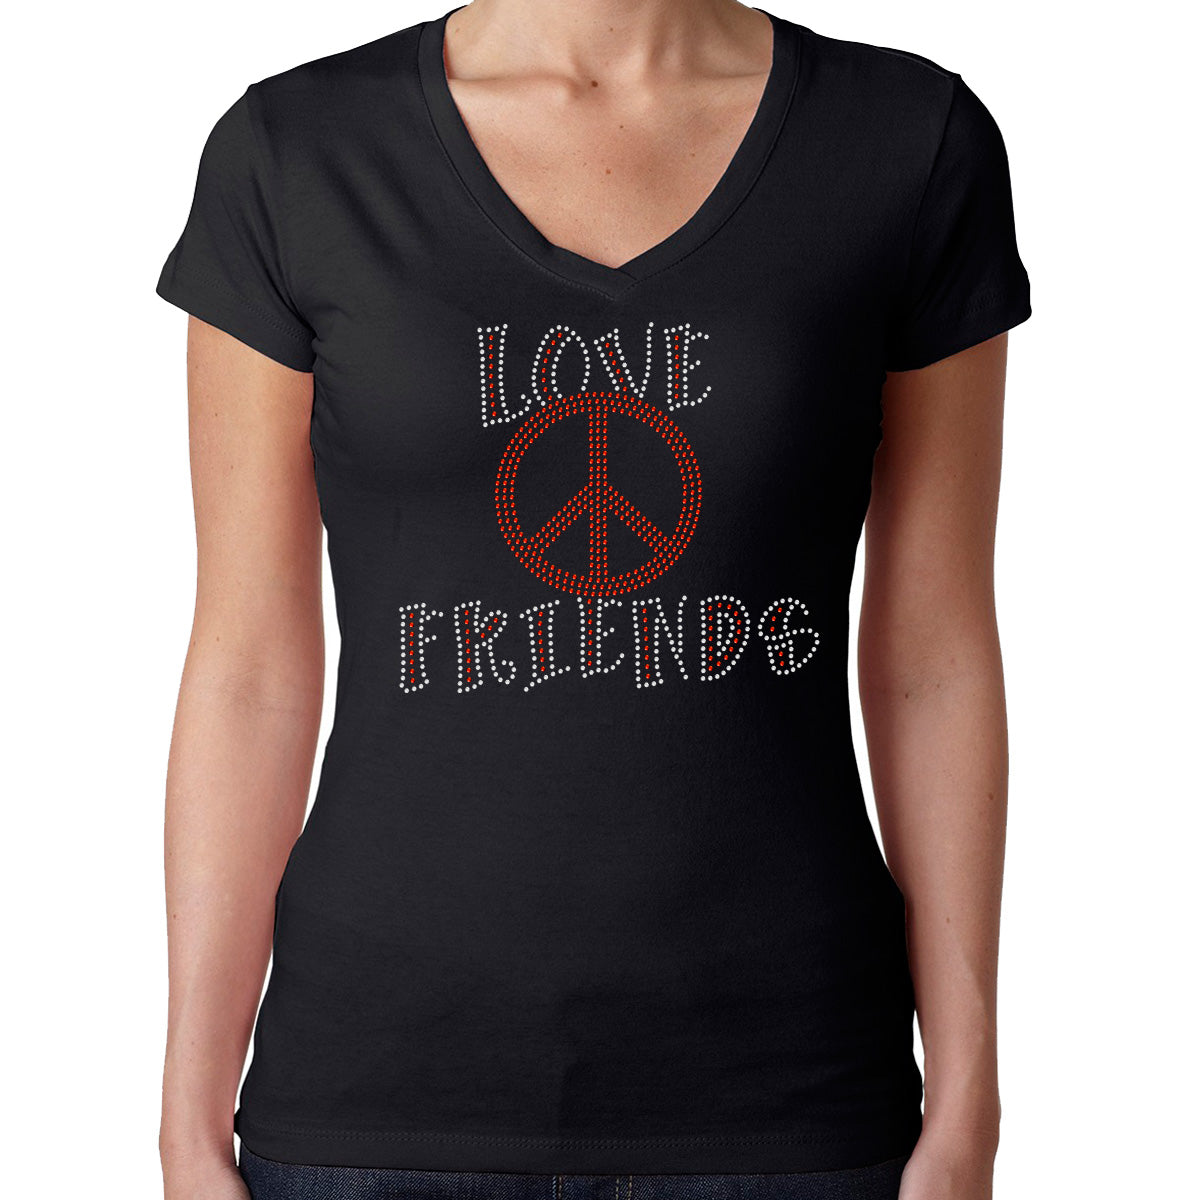 Womens T-Shirt Rhinestone Bling Black Fitted Tee Love Friends Peace Symbol